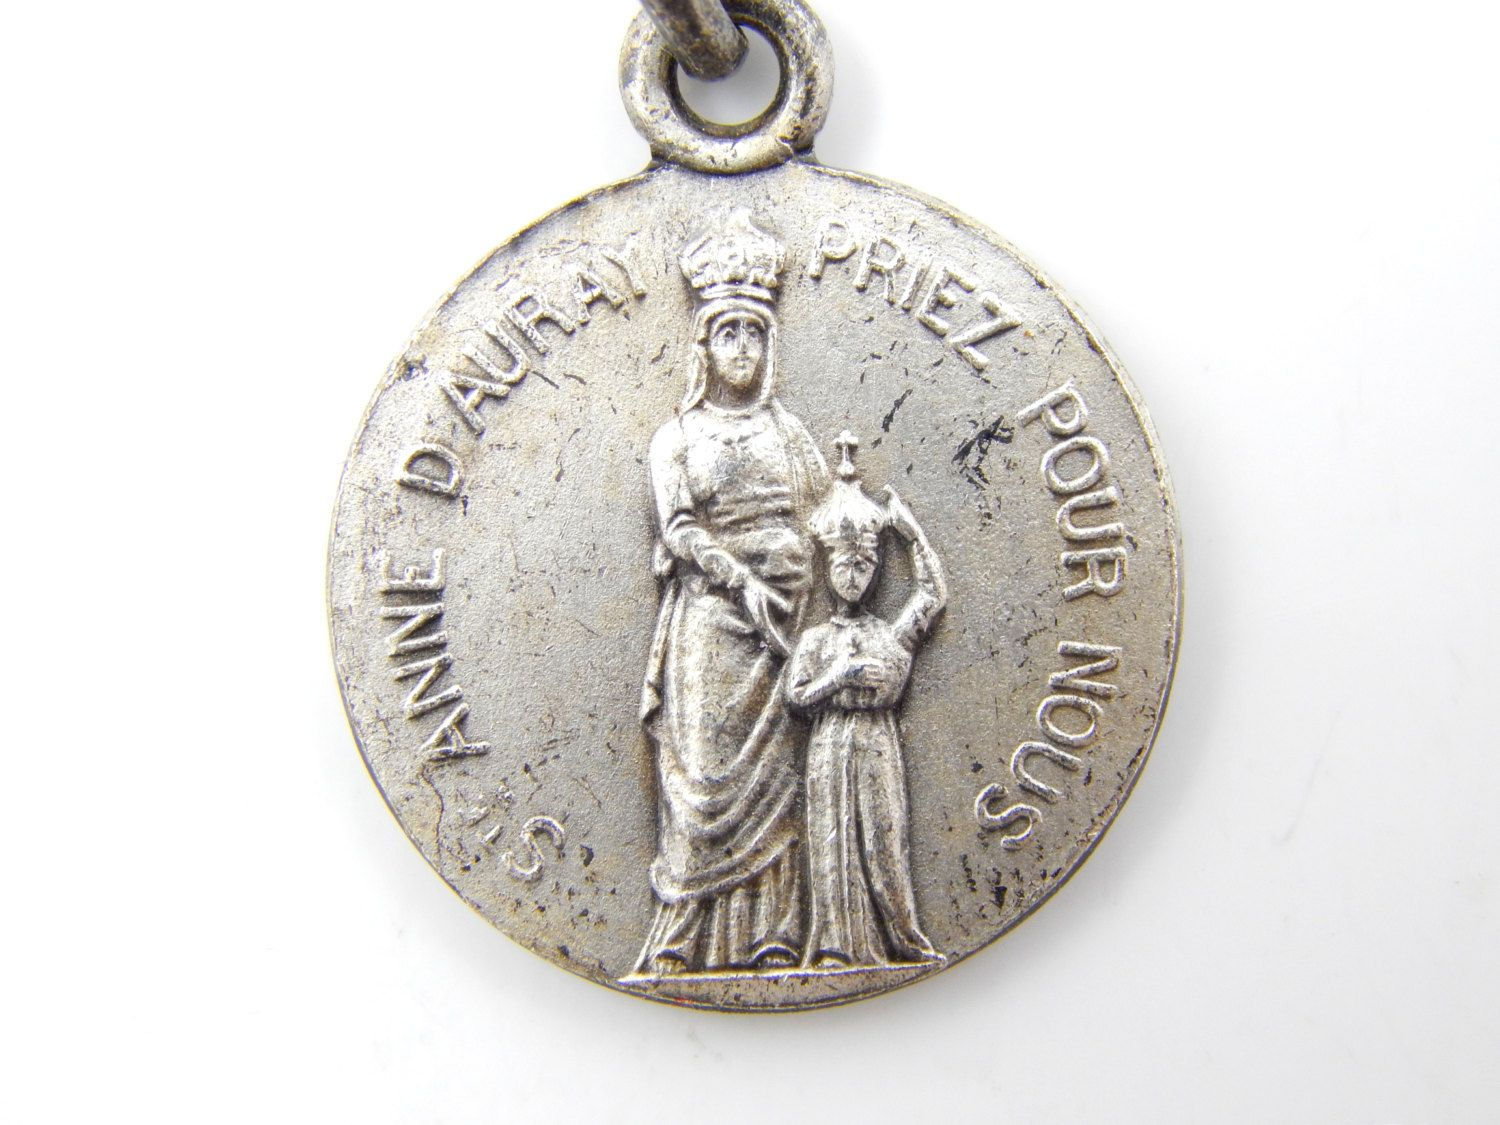 st waiters medal laboure replica medallion catholic silver catherine all patron antique and waitresses of sterling shop categories